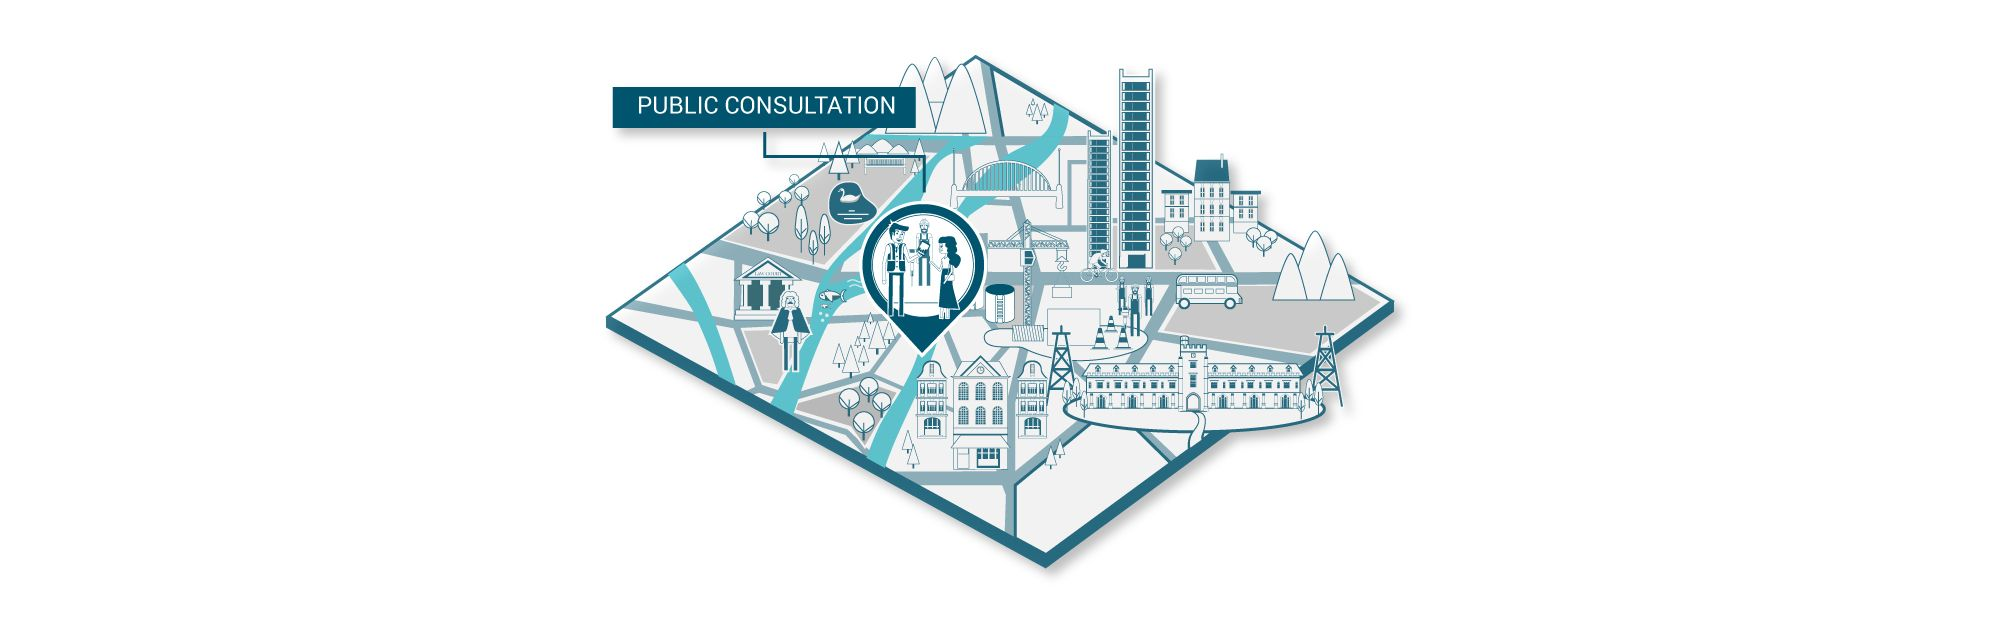 Best Practice for Public Consultation on Infrastructural Projects